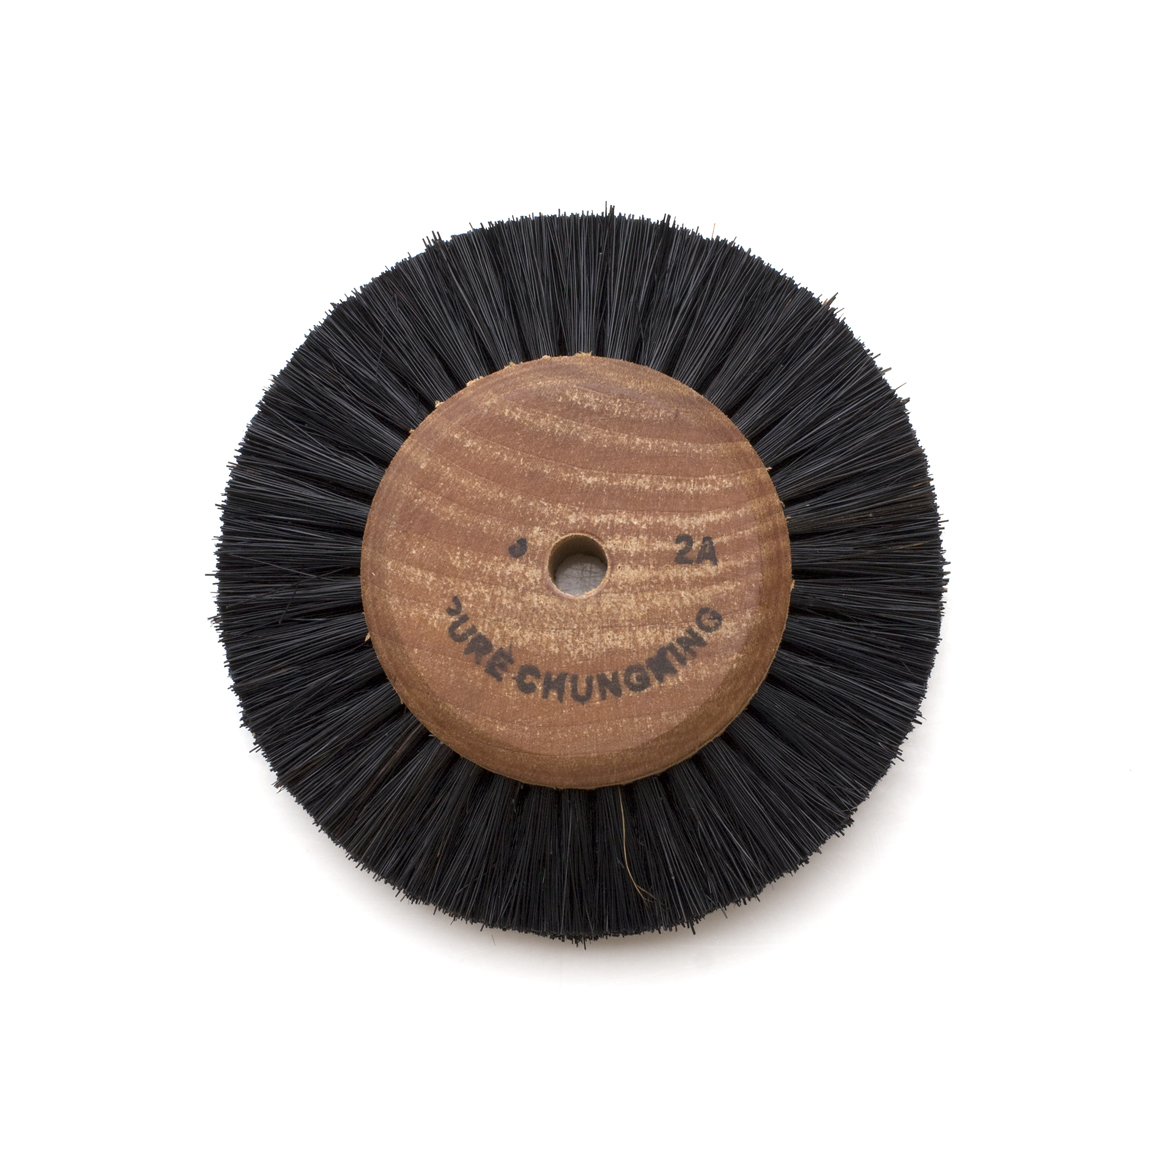 WOOD HUB BRUSH 2A - 2 ROW, 3-1/8